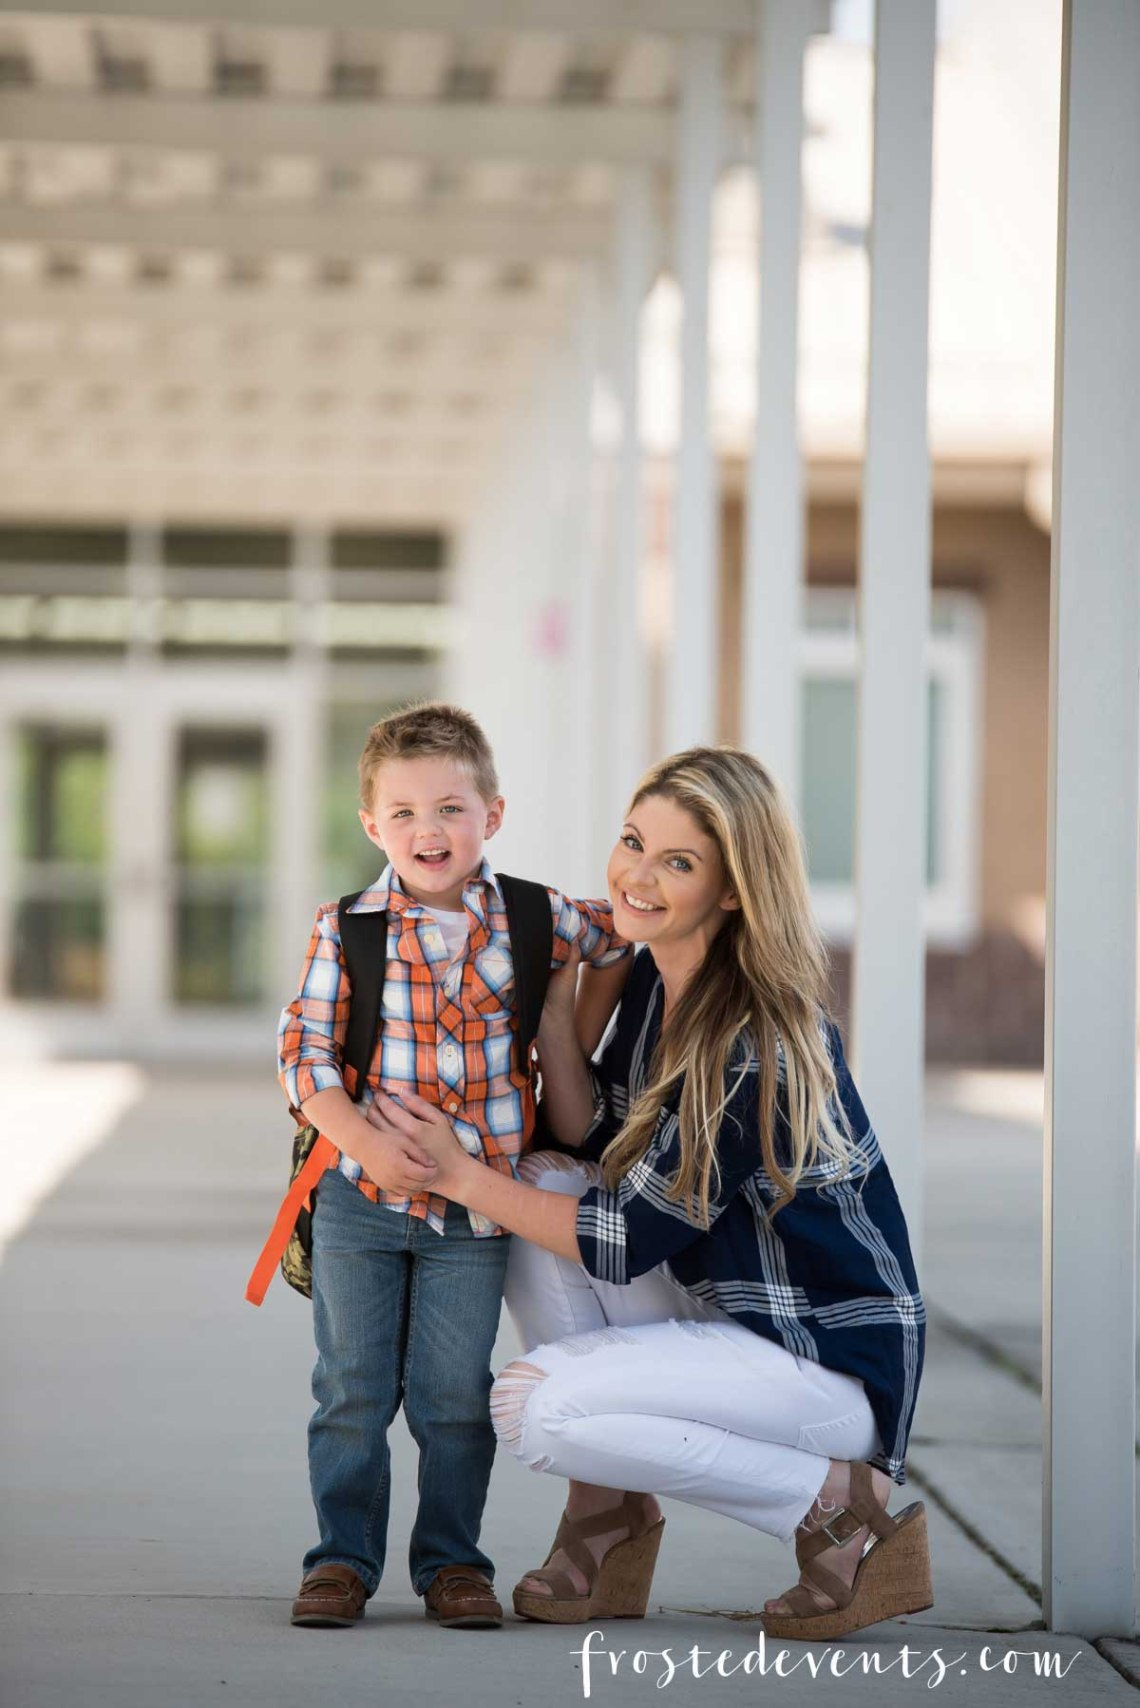 Back to School Style Shopping - Kids Clothing & Fashion Trends via Misty Nelson frostedMOMS @/yasminleonardphotography NC Family Photographer yasminleonard.com